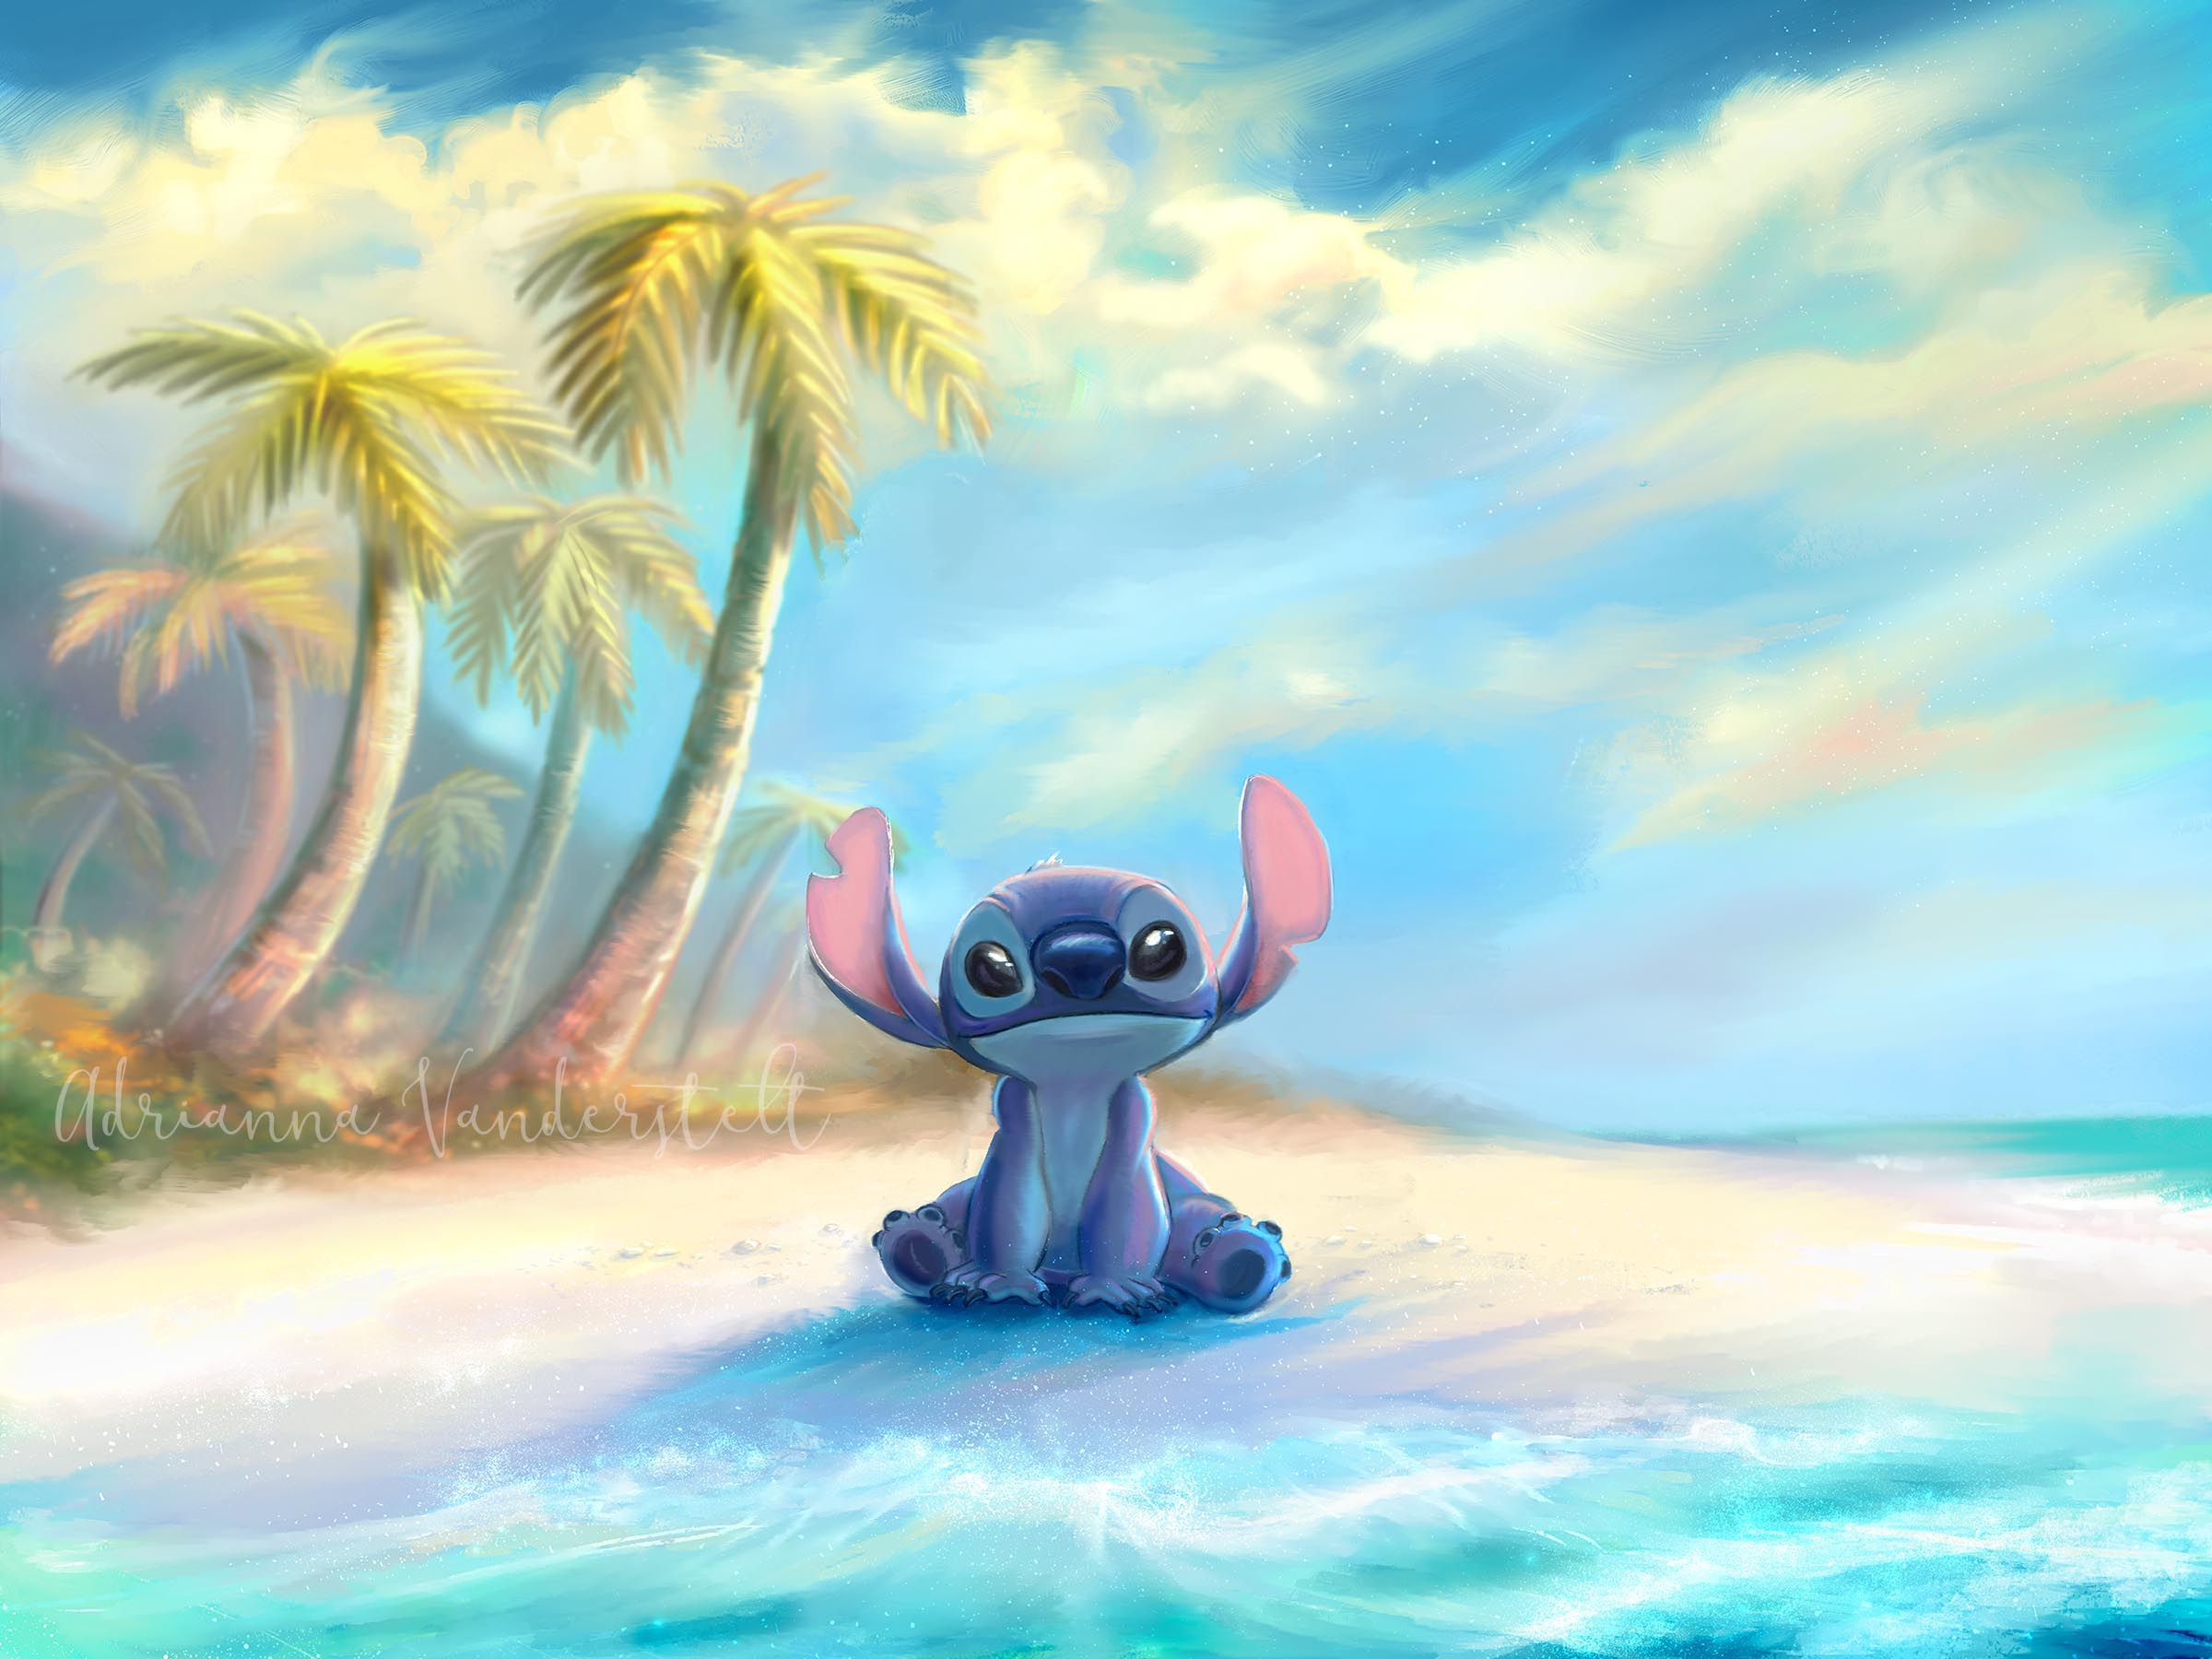 Stitch smaller new reference watermarked.jpg